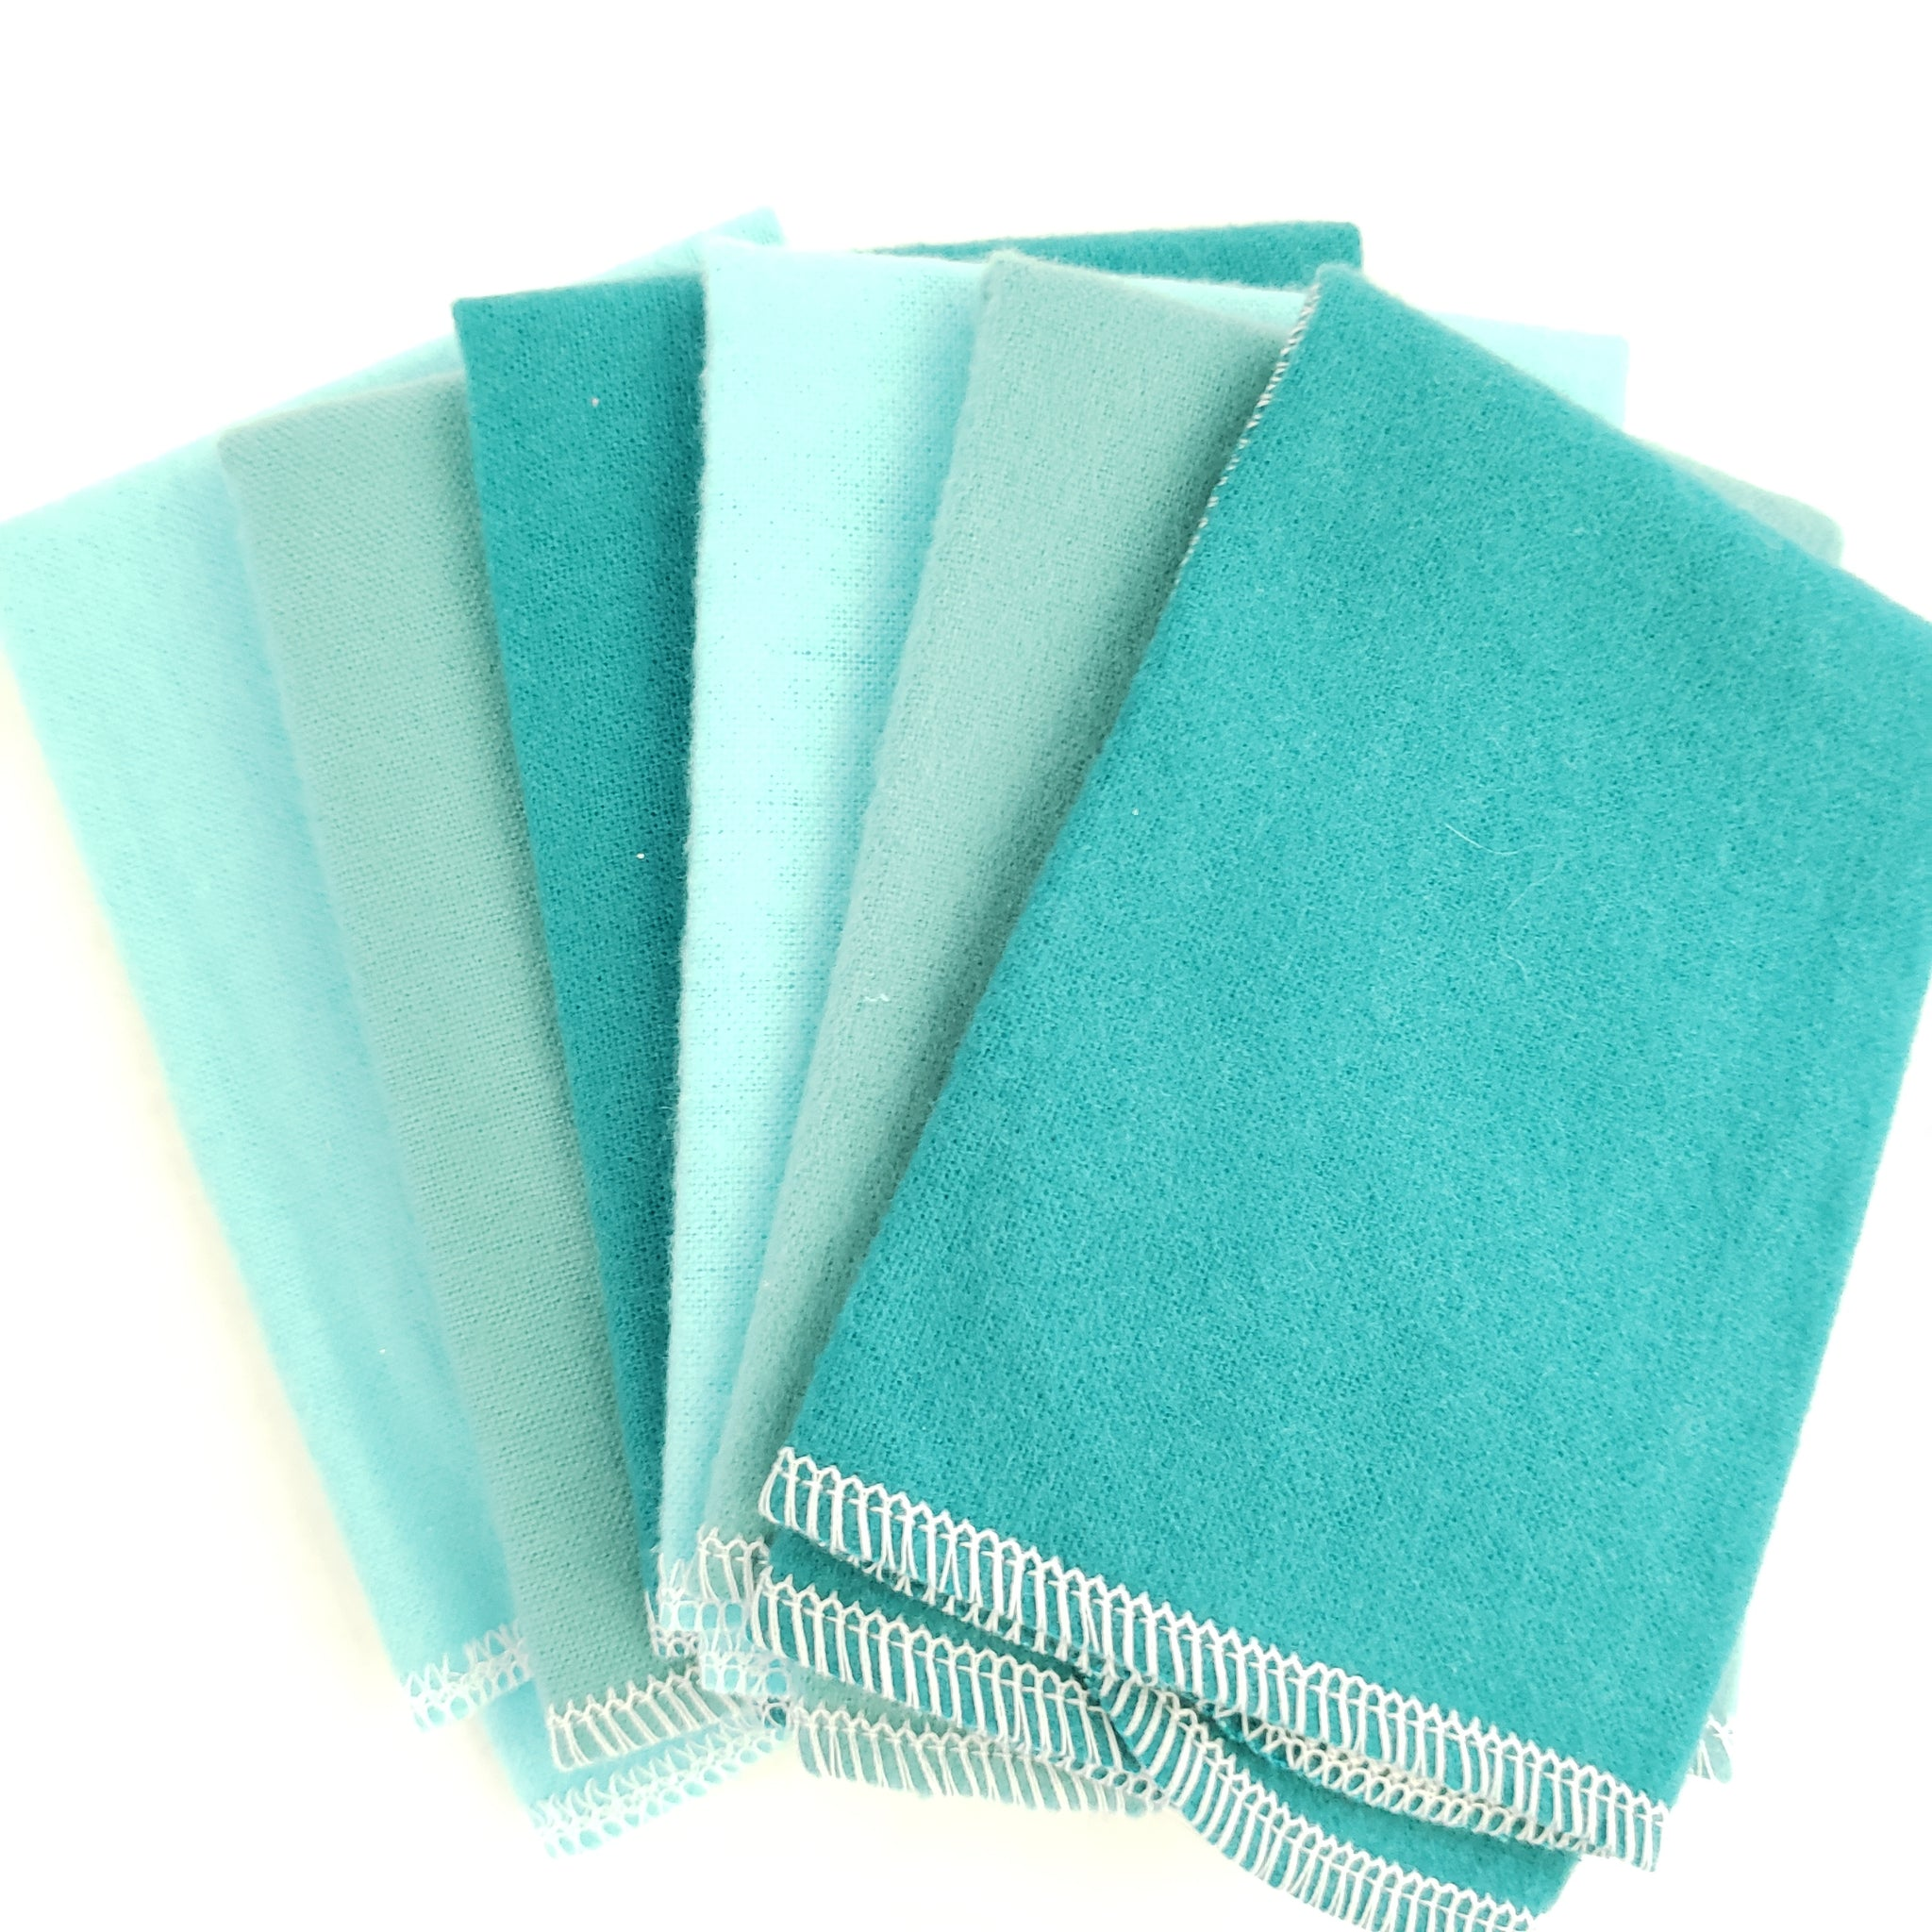 PaperLESS Wipes - The Solids